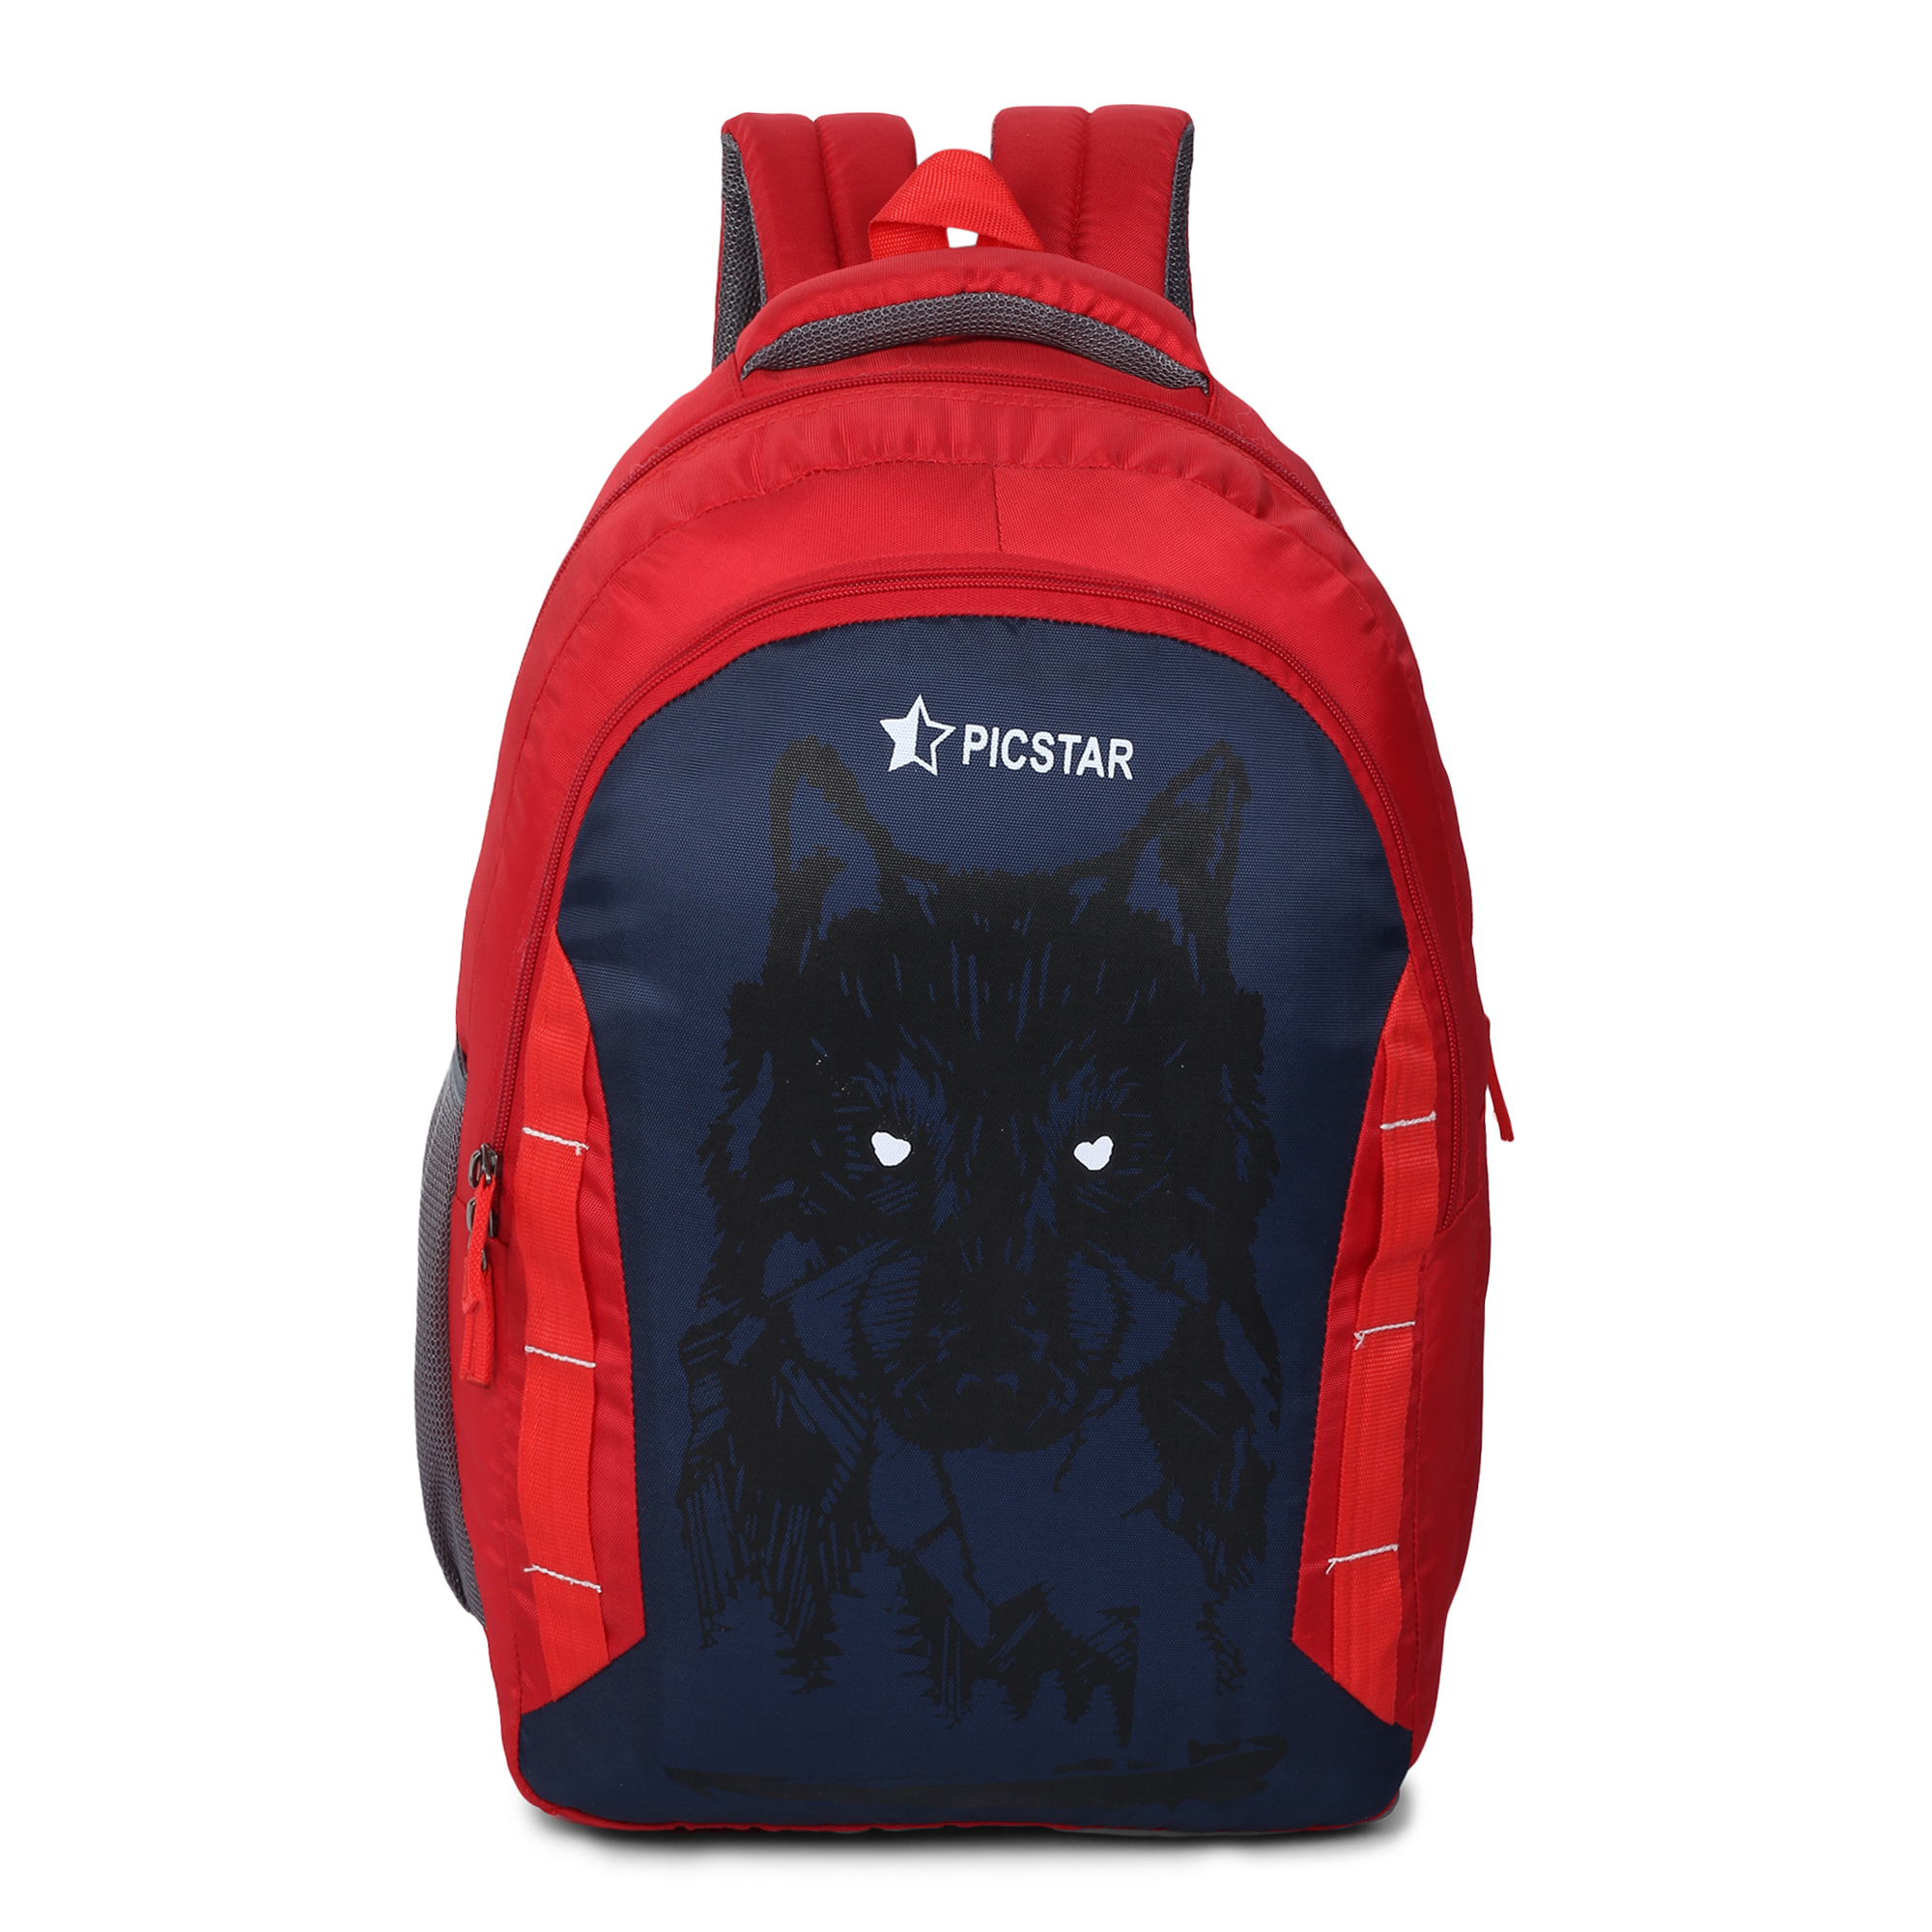 Picstar | Picstar Daredevil 35 L Red Backpack for Men and Women|Unisex Backpack|College Bag for Boys and Girls|office Backpack |School Bag|Trendy Backpack|Stylish Backpack